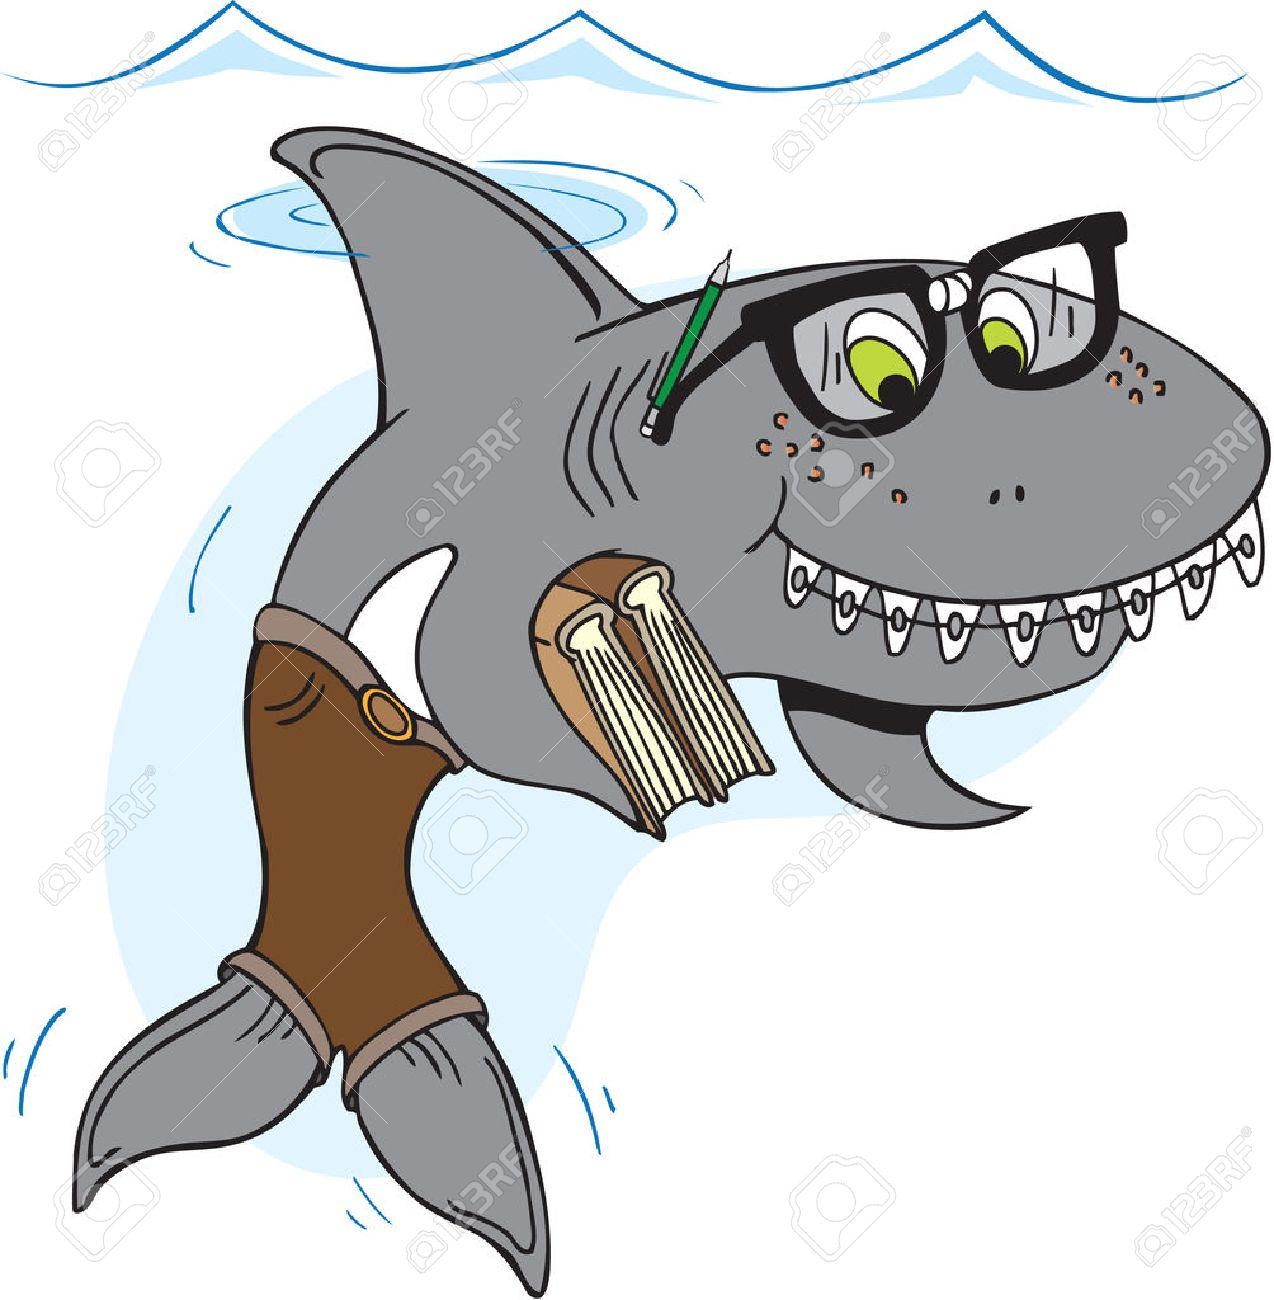 Nerd shark with glasses and braces carrying books - 33618299